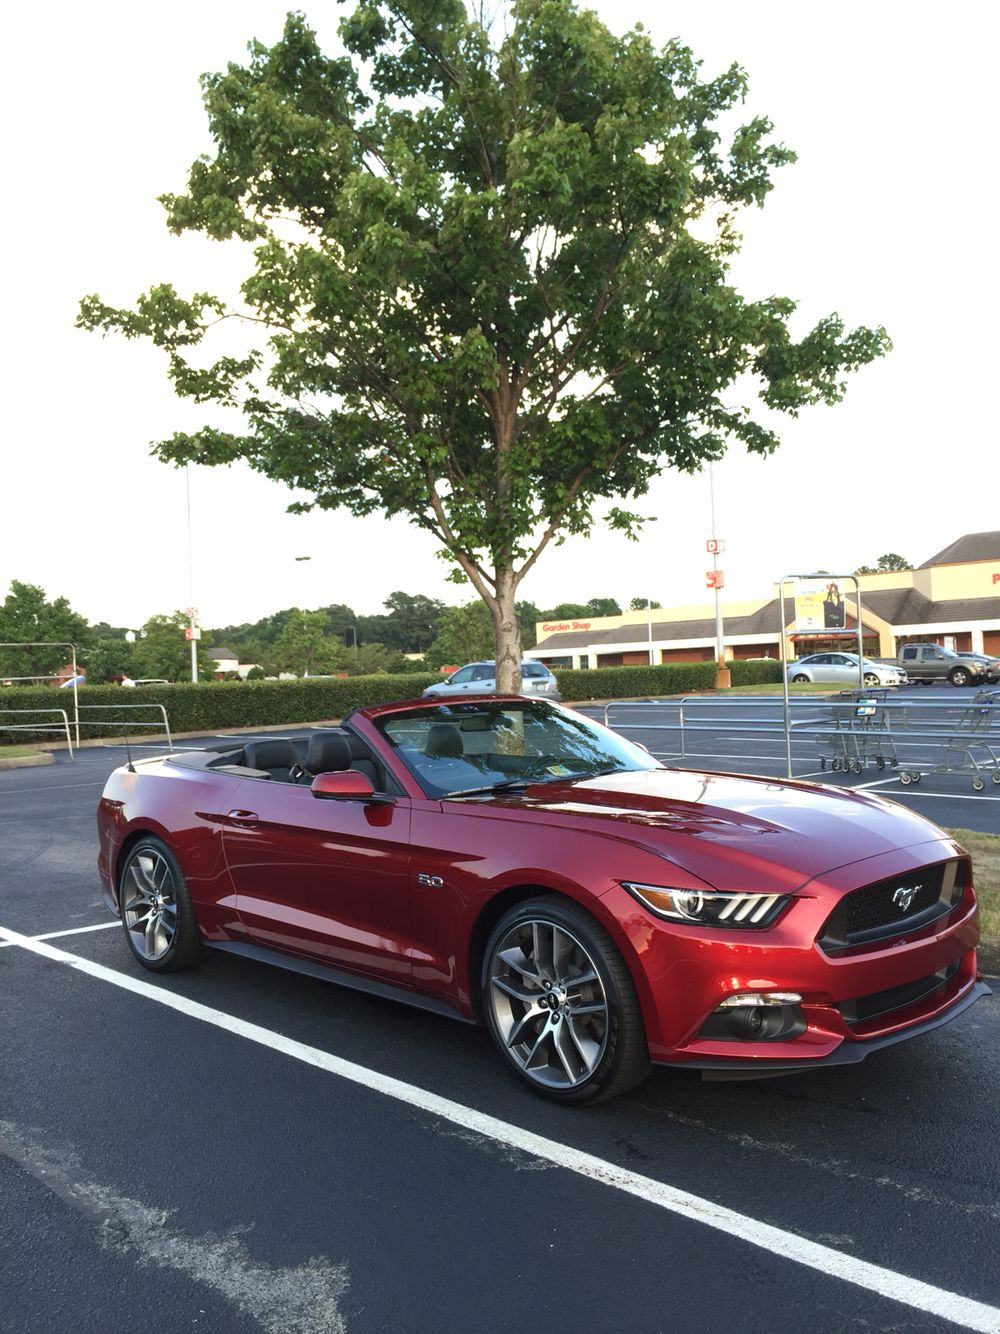 2015 ruby red mustang gt convertible my mustang gt. Black Bedroom Furniture Sets. Home Design Ideas